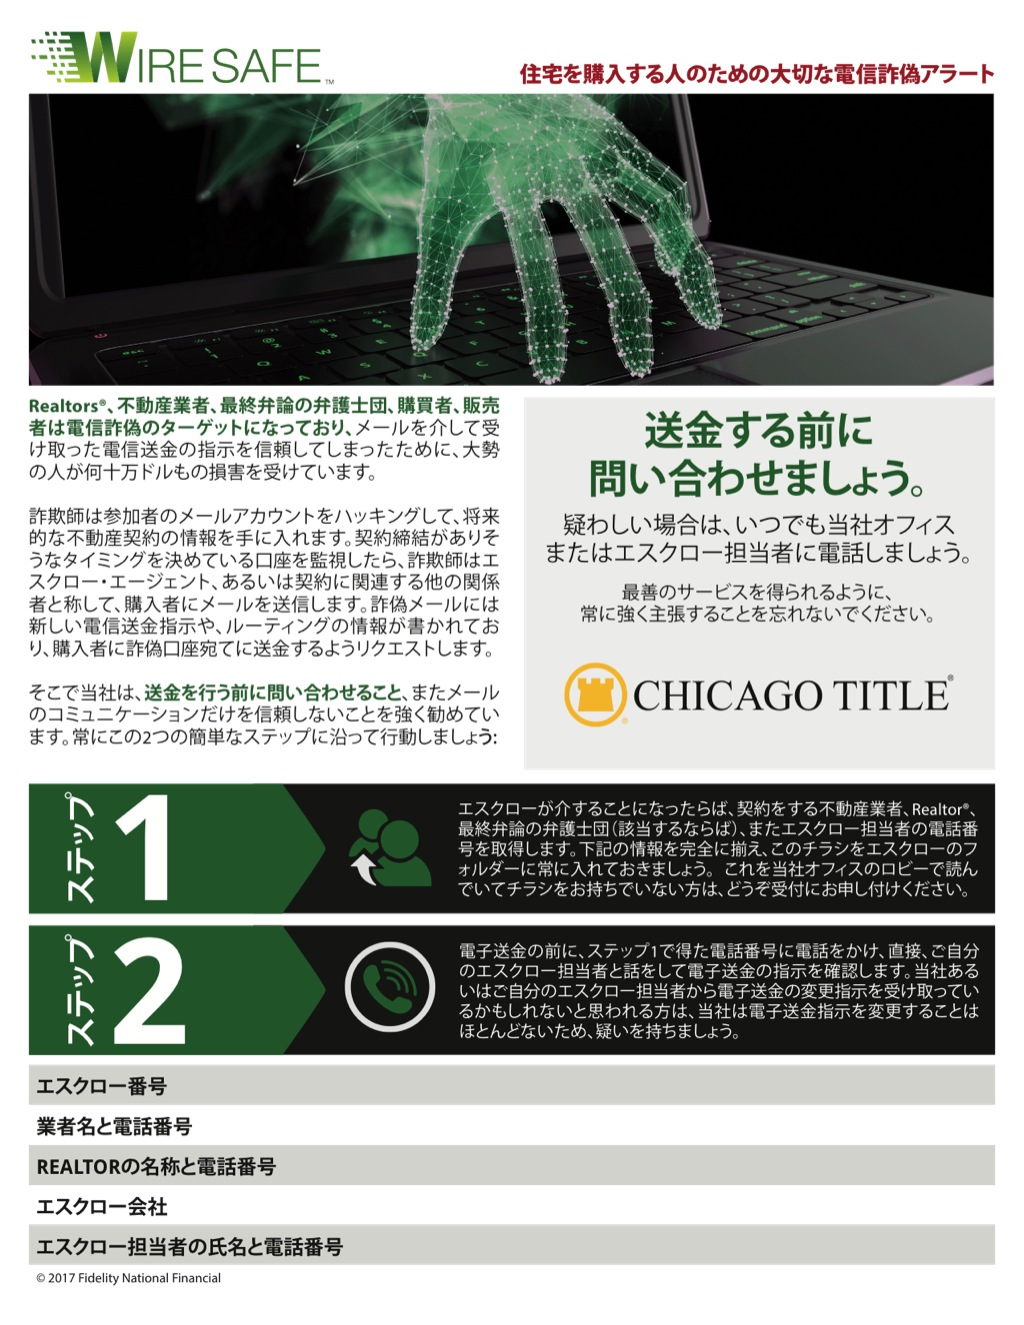 Corefact Wire Safe Buyer Flyer - Japanese - CTT